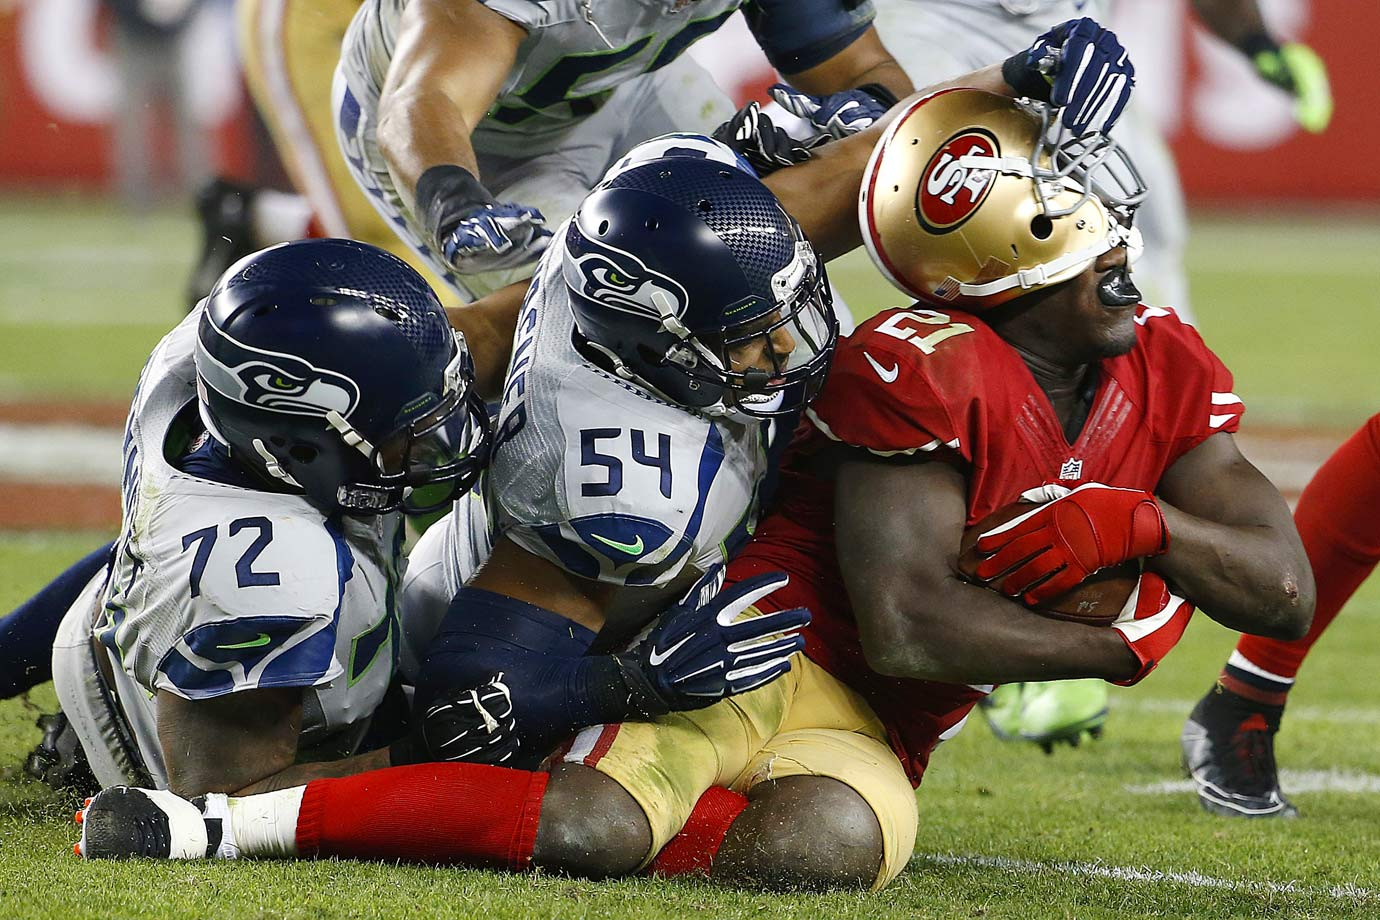 In a rematch of last year's NFC Championship, the Seahawks routed the 49ers on Thanksgiving. Colin Kaepernick was held to under 130 yards passing, and Frank Gore ran for fewer than 30 yards. For the second straight week, Wilson threw for the game's only touchdown and Steven Hauschka made four field goals.